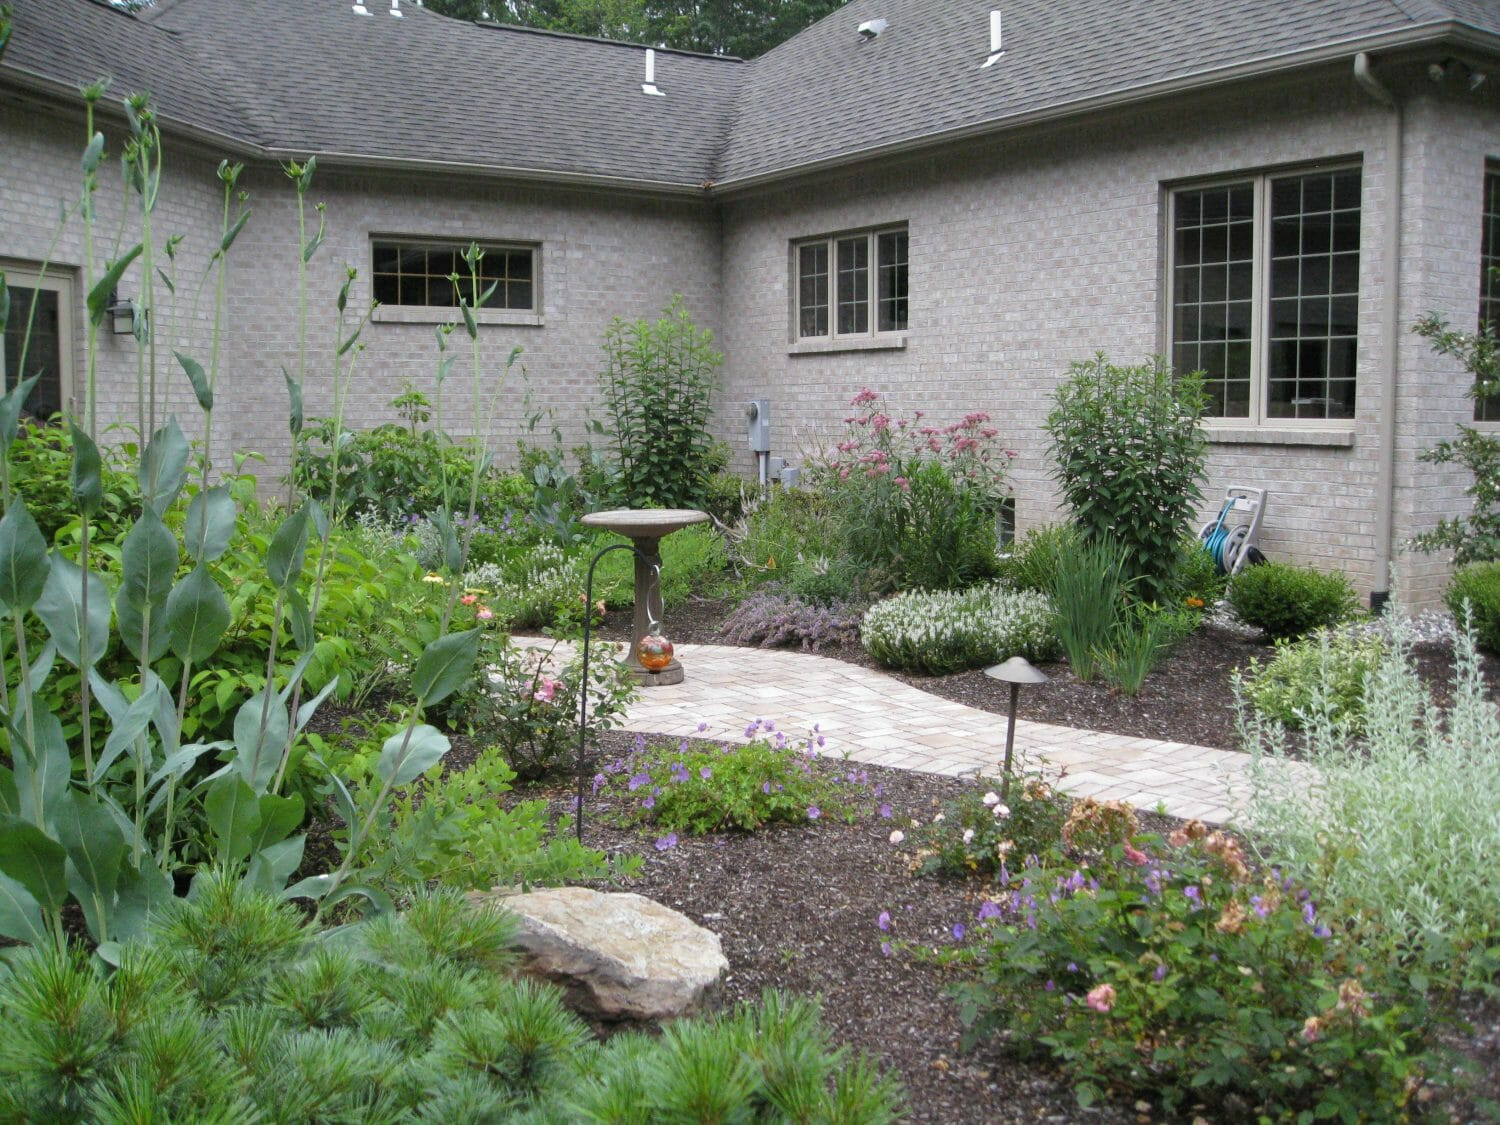 perennial garden for pollinators - Landscape Design and Consulting